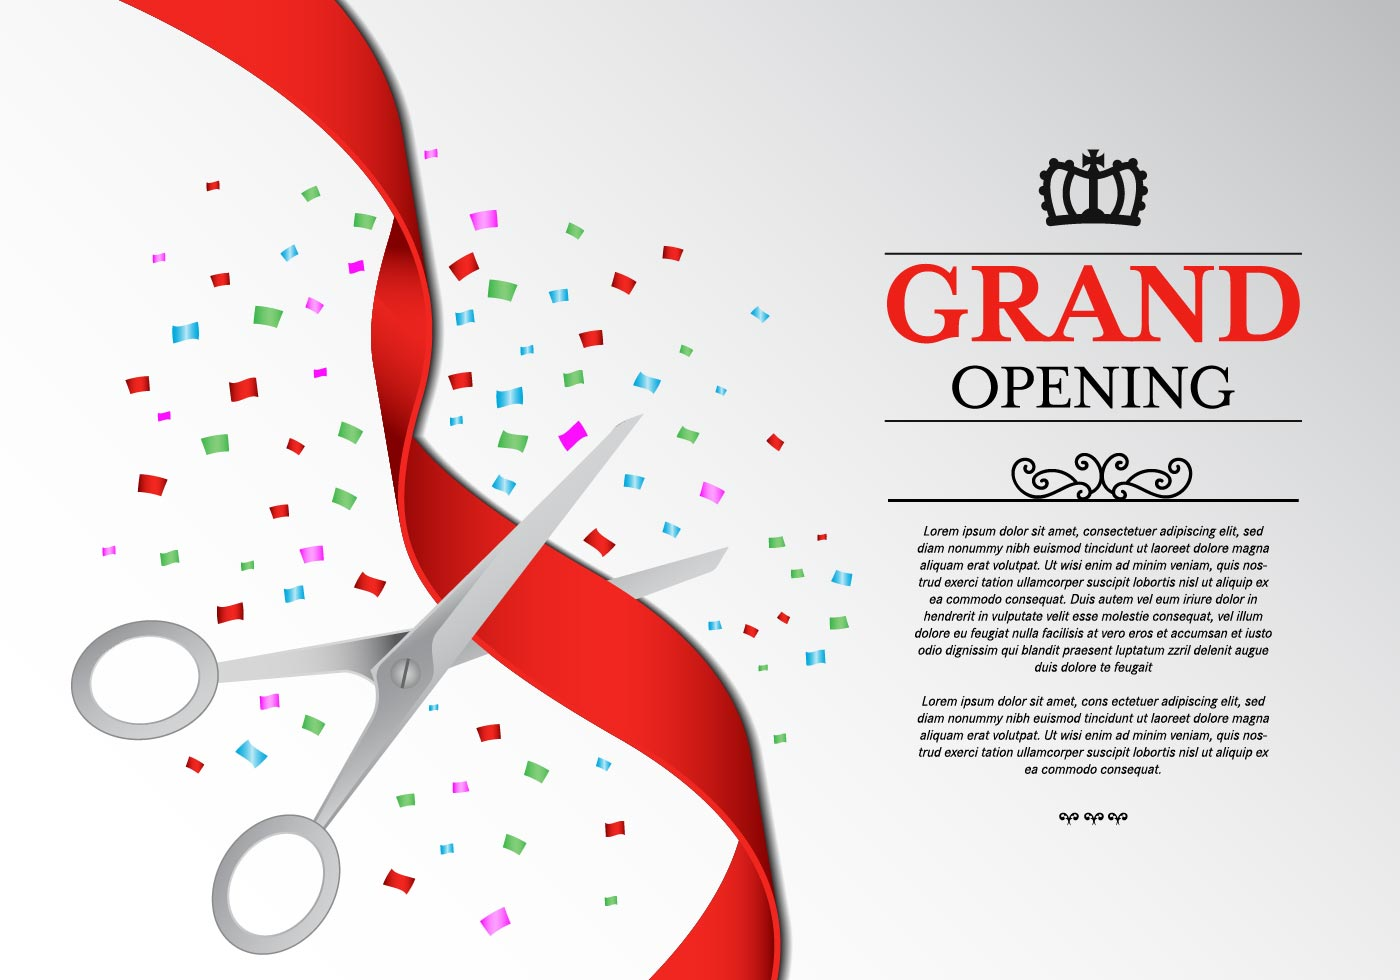 ribbon cutting ceremony vector download free vector art stock graphics images. Black Bedroom Furniture Sets. Home Design Ideas